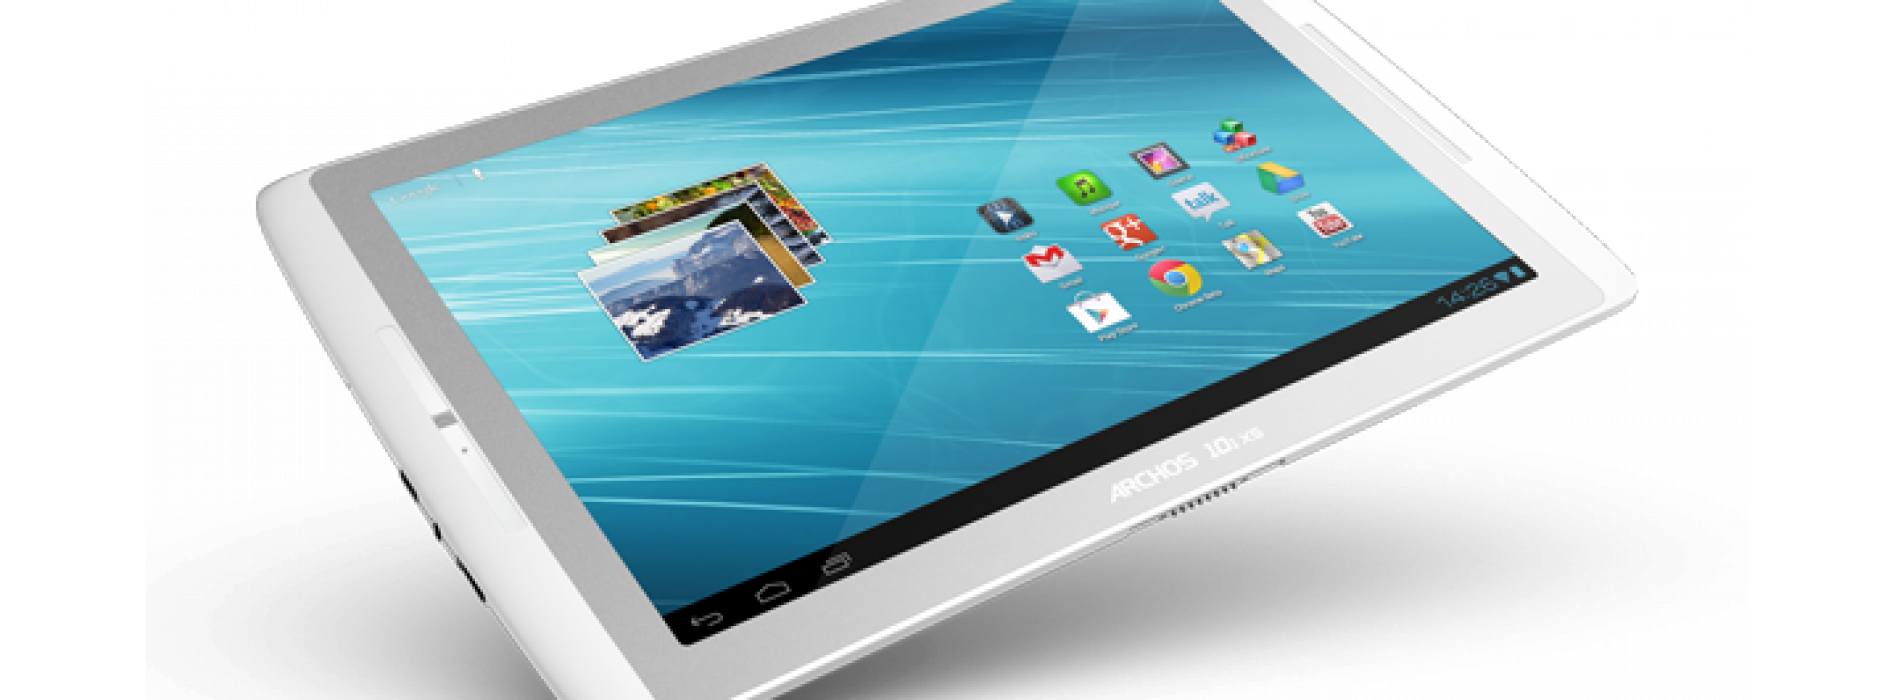 Archos 101XS review